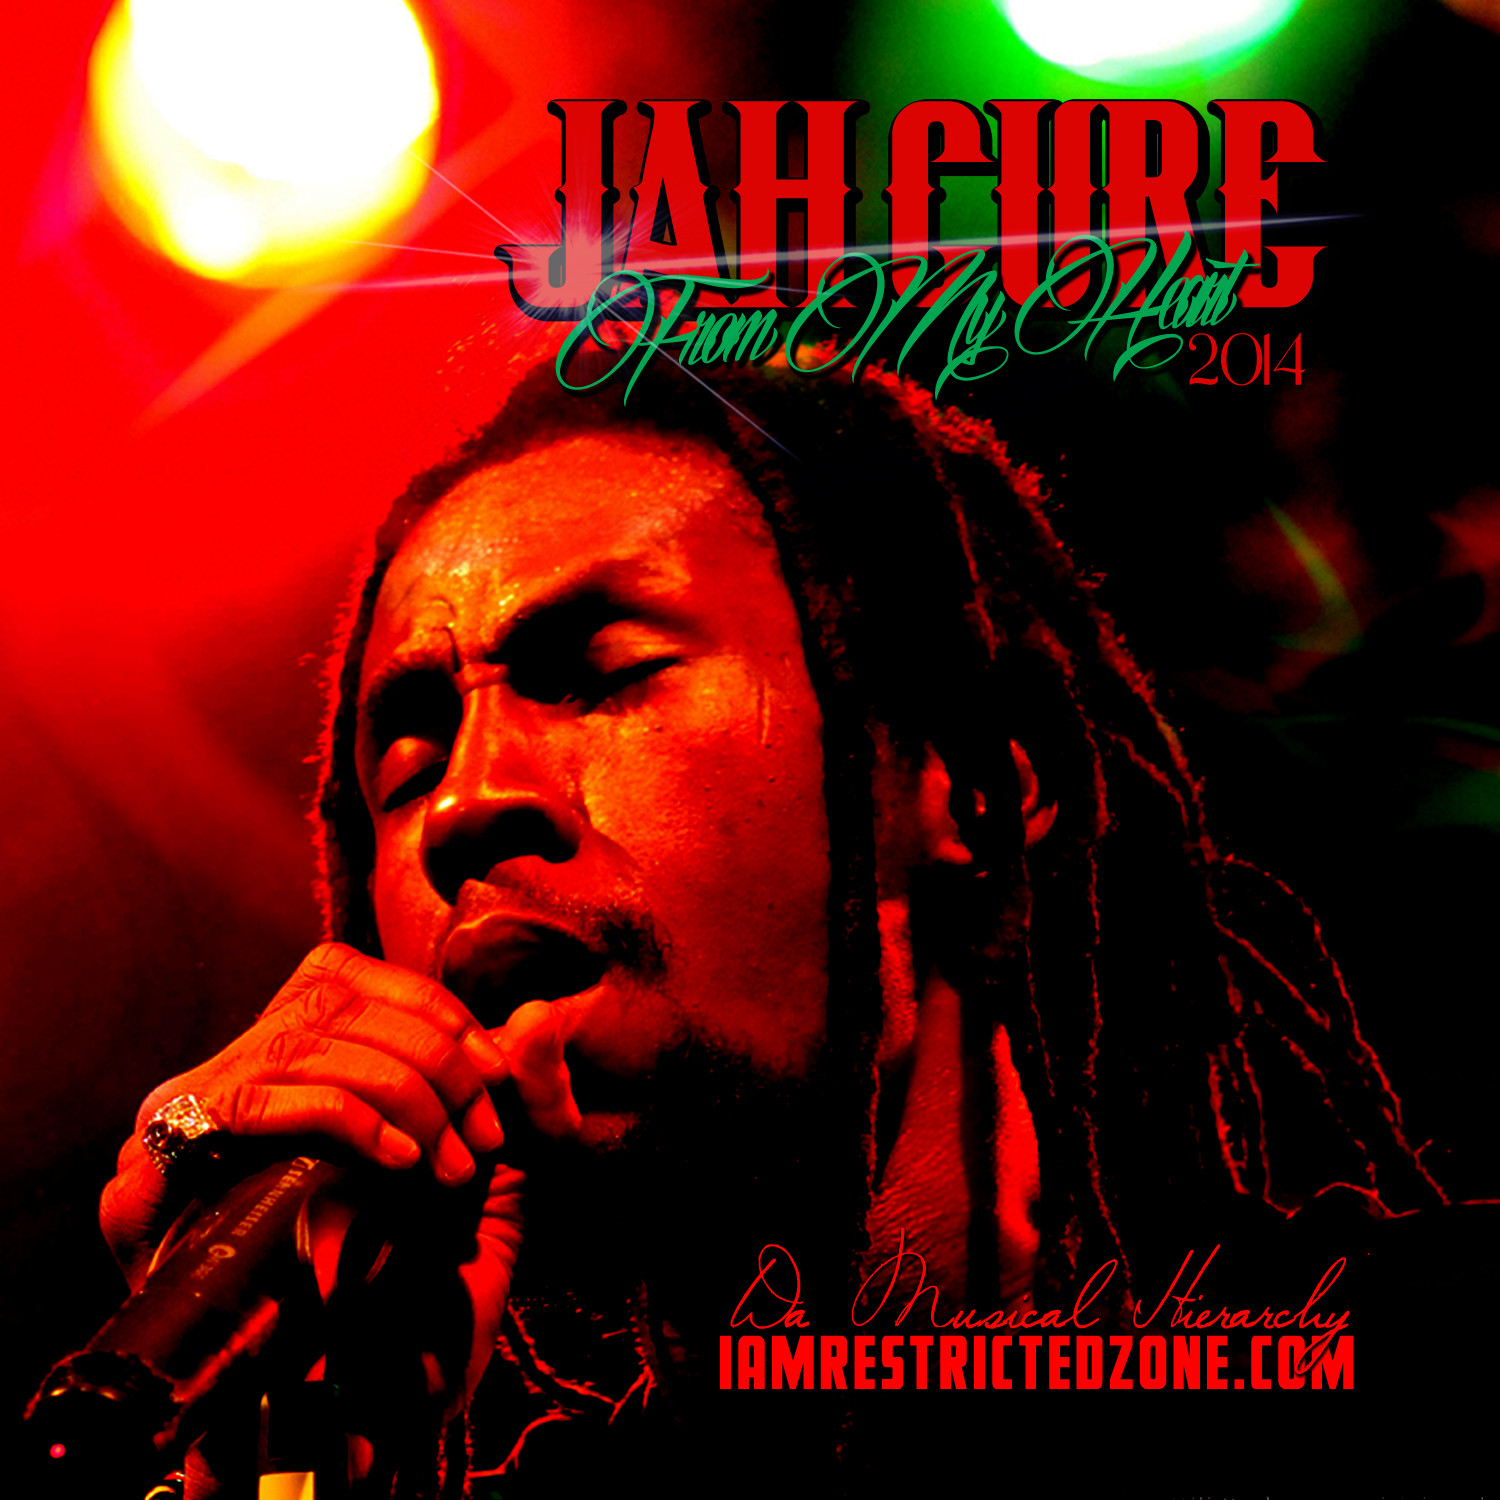 Jah Cure - (From My Heart) Mixtape 2014